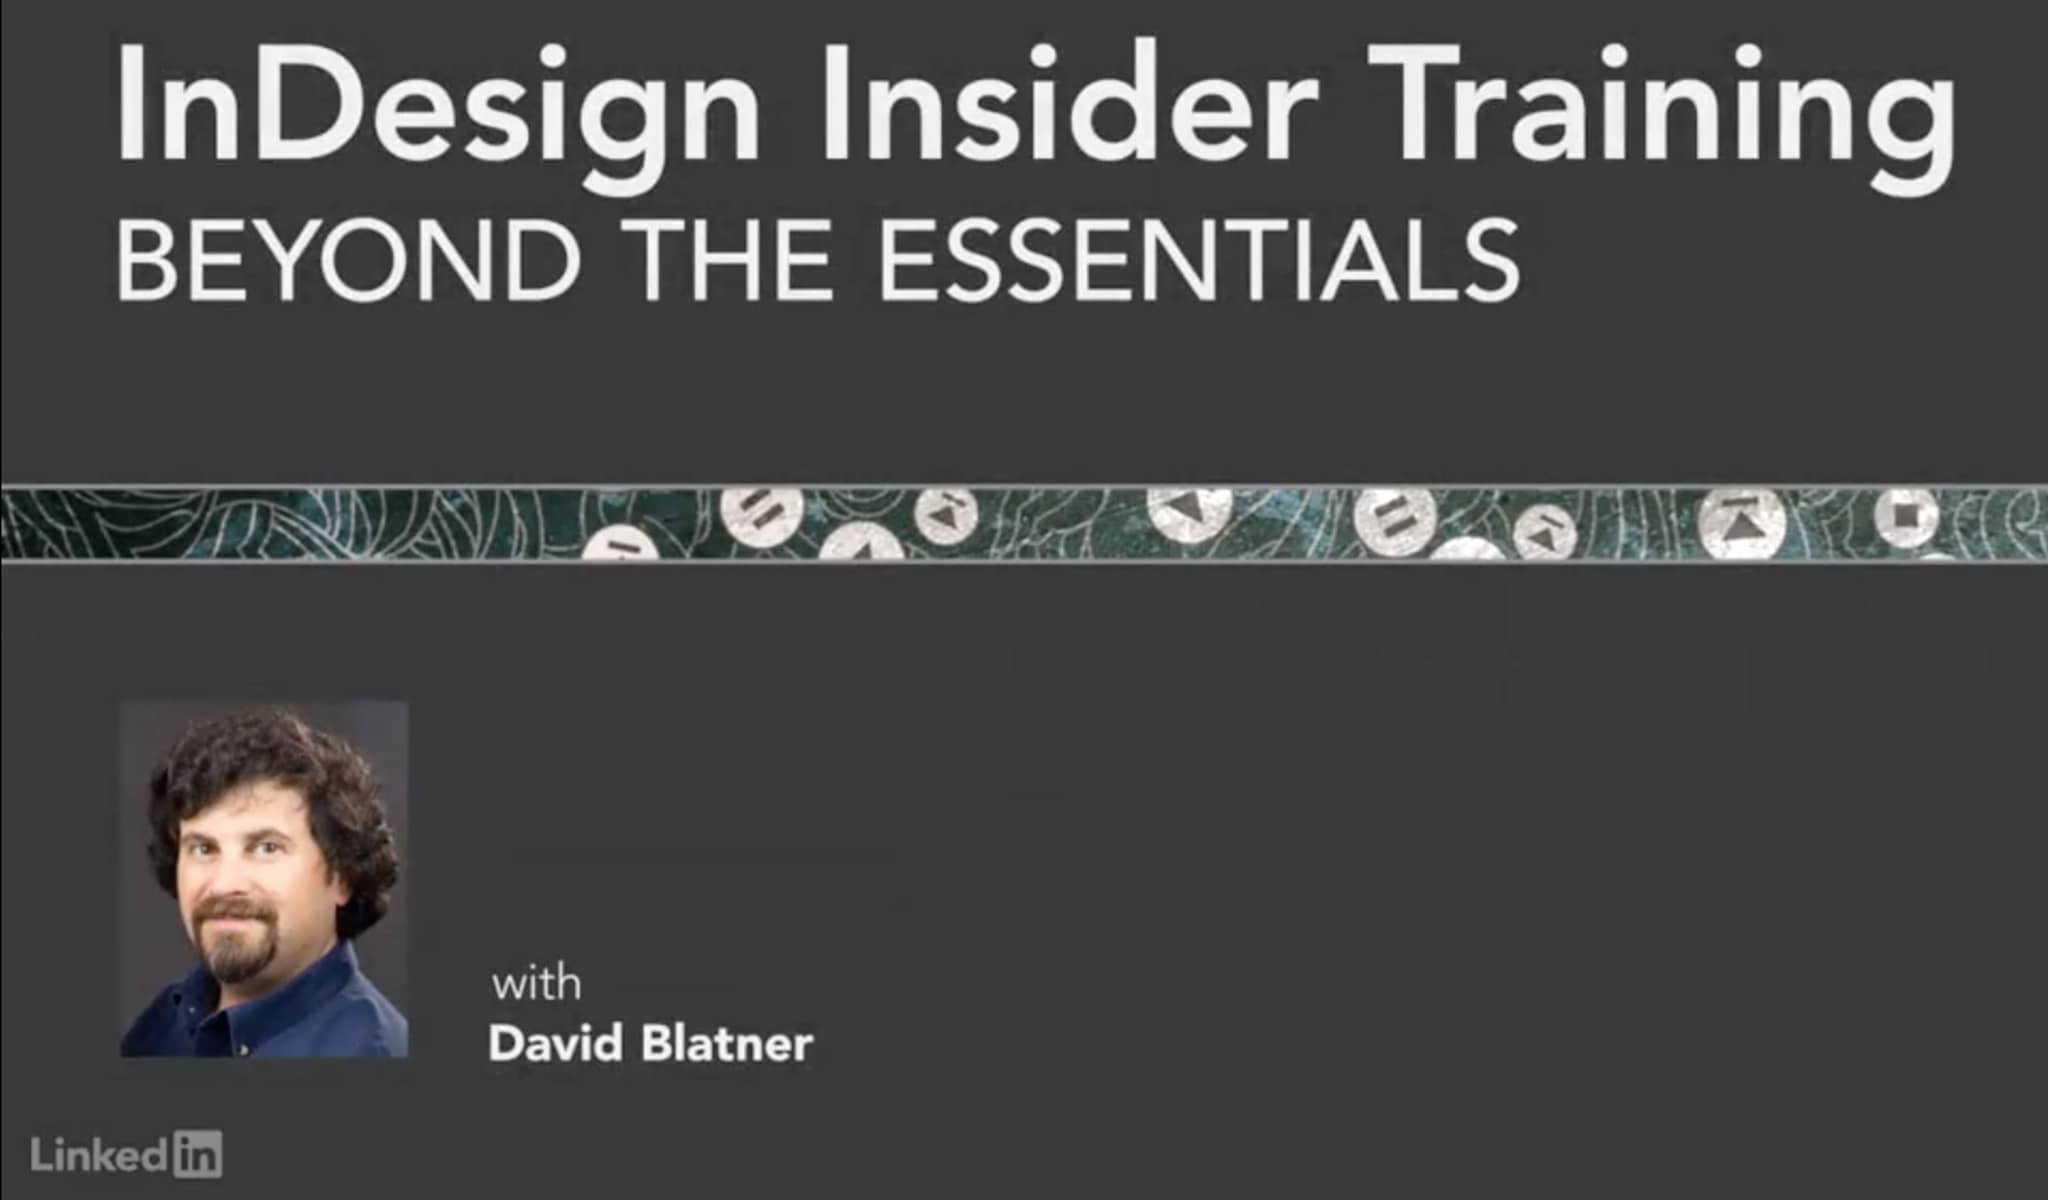 InDesign Course: Beyond the Essentials by David Blatner